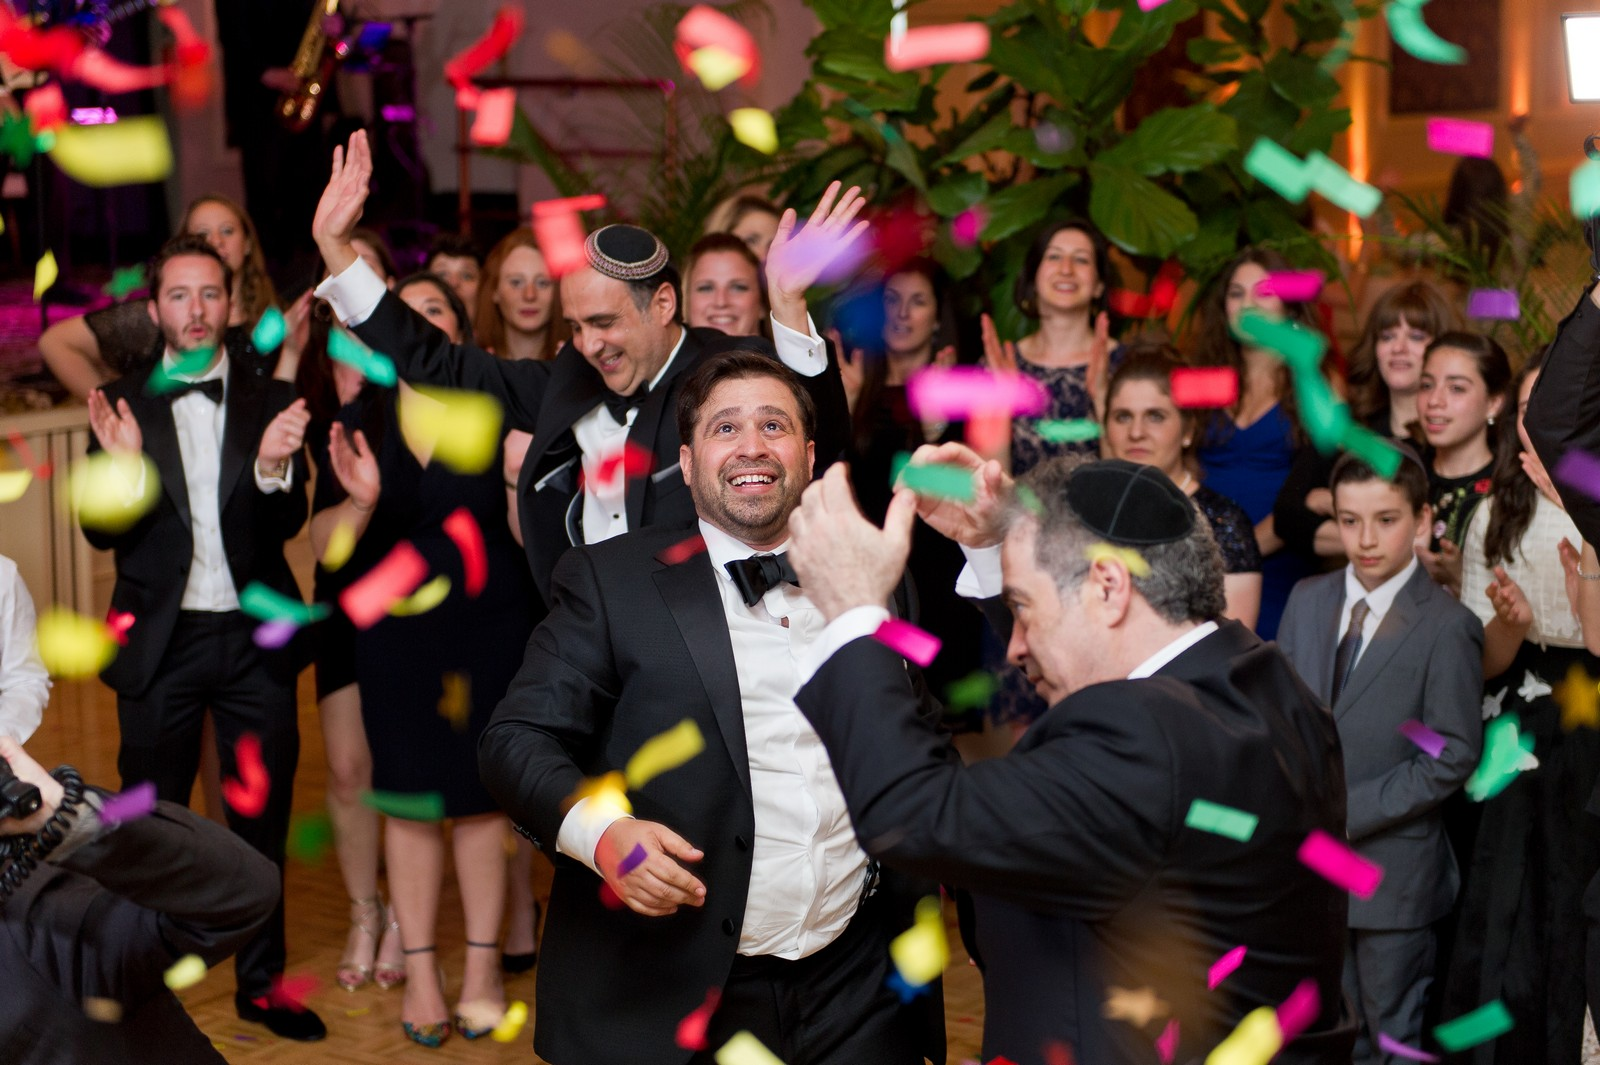 Yoey and Aaron's Memorial Day Modern Jewish Wedding at Anthony's Pier 9, New Windsor, NY Photos by Chaim Schvarcz dancing confetti